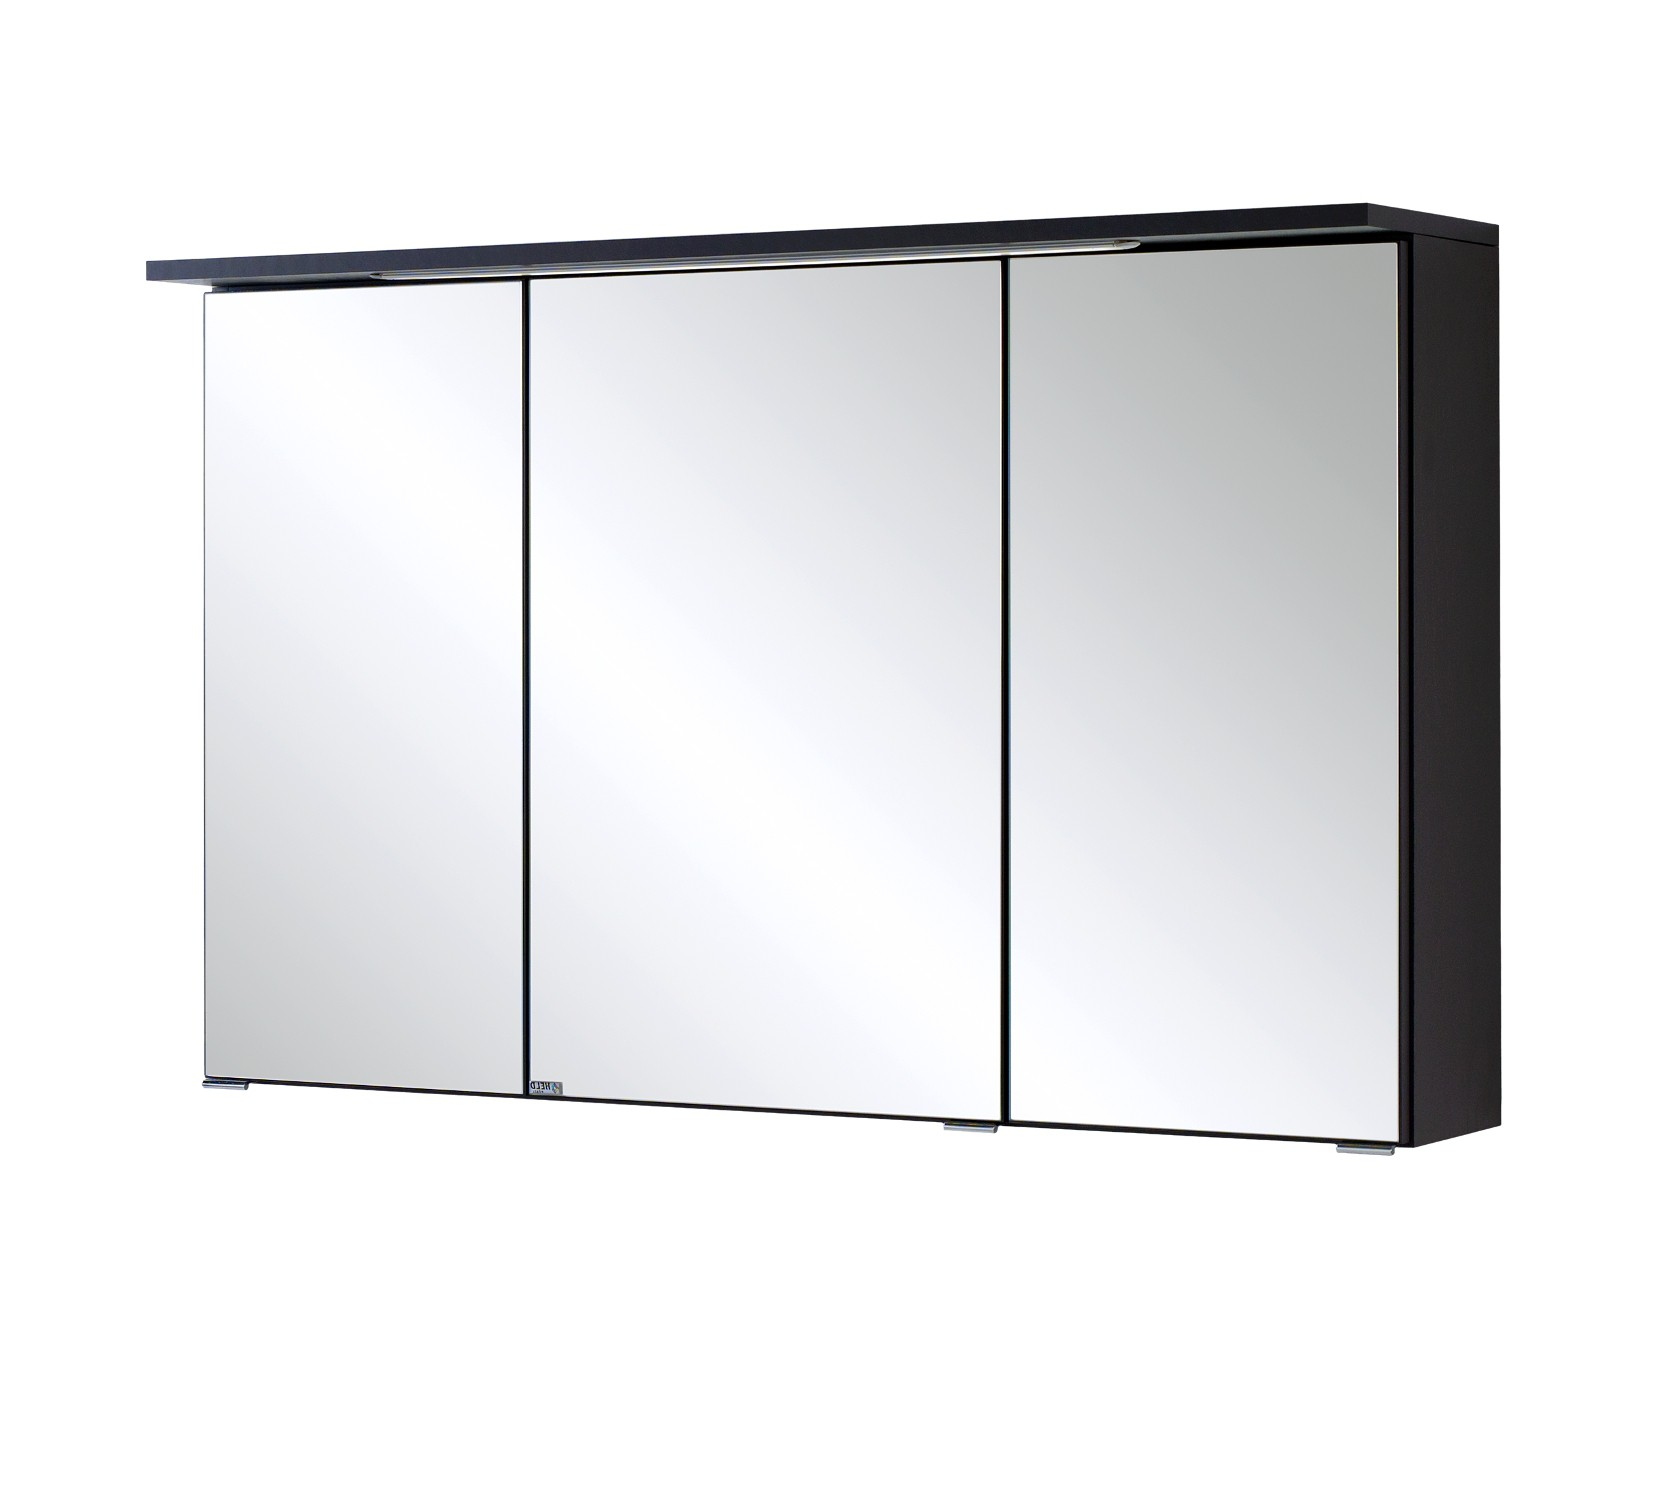 bad spiegelschrank bologna 3 t rig mit led lichtleiste 100 cm breit graphitgrau bad. Black Bedroom Furniture Sets. Home Design Ideas